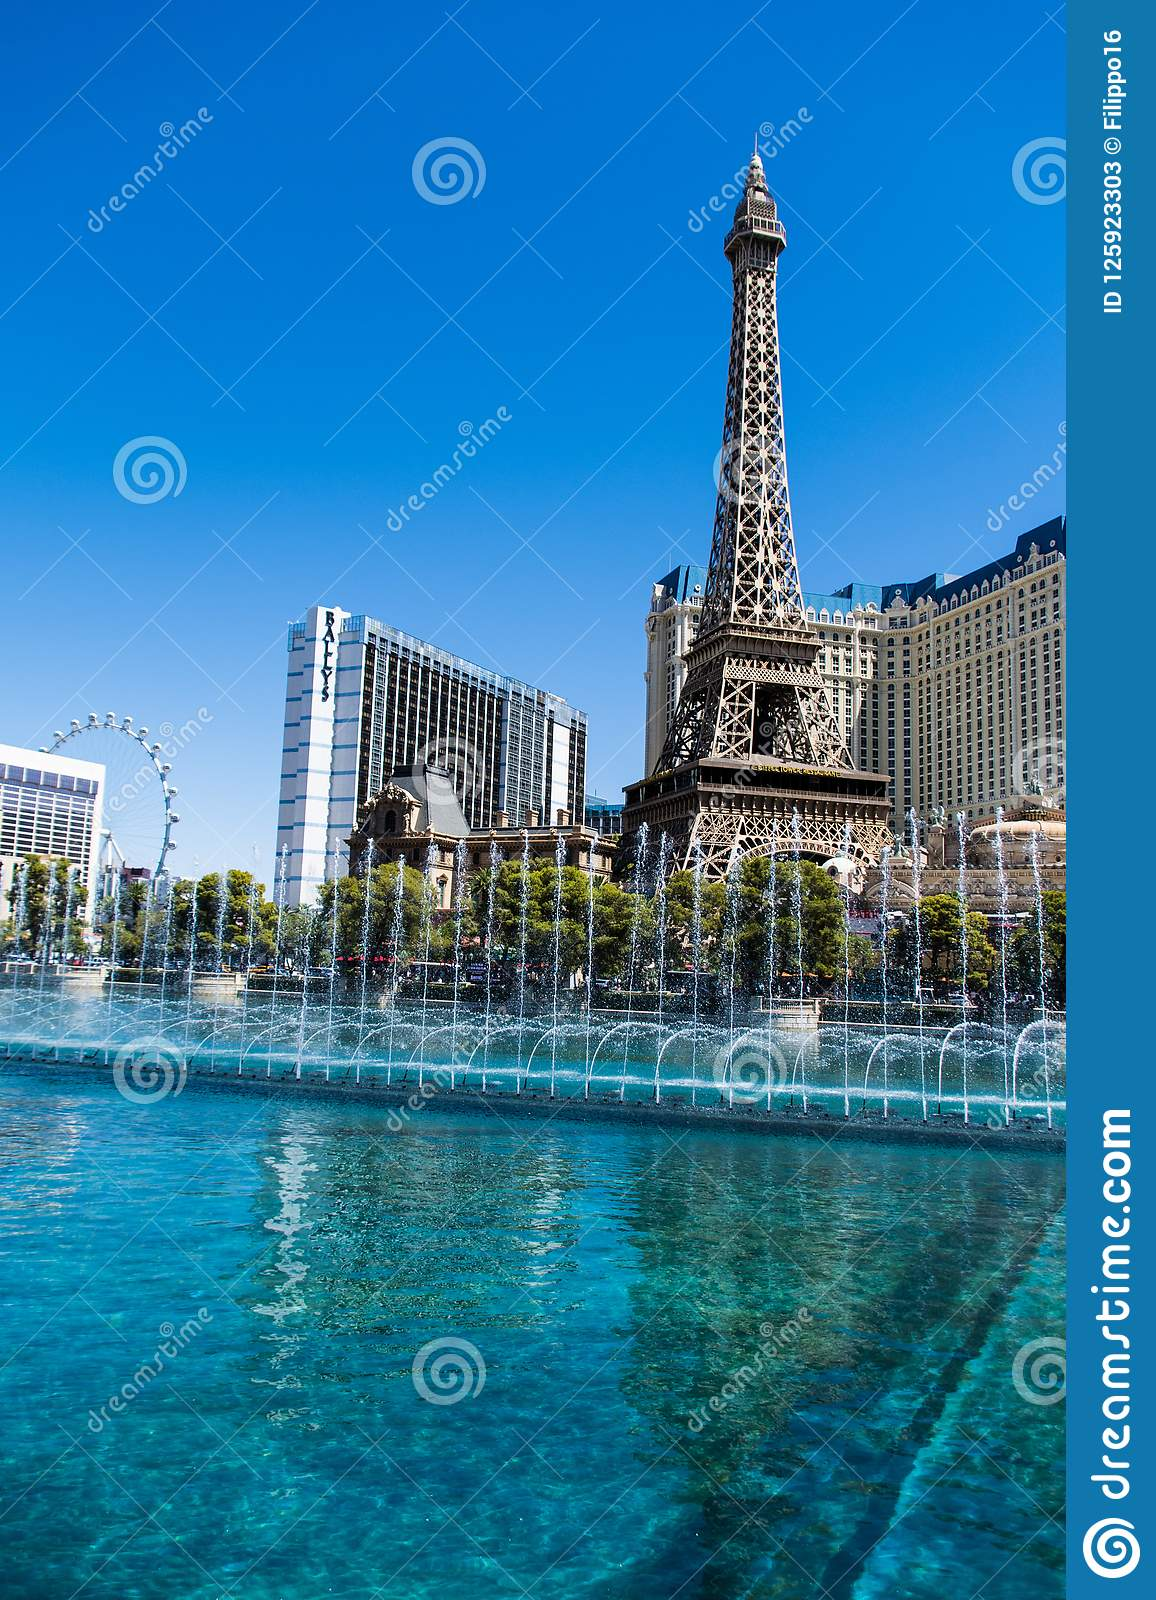 Las Vegas, NV, USA 09032018: stunning view of Paris hotel in day light during bellagio fountain show